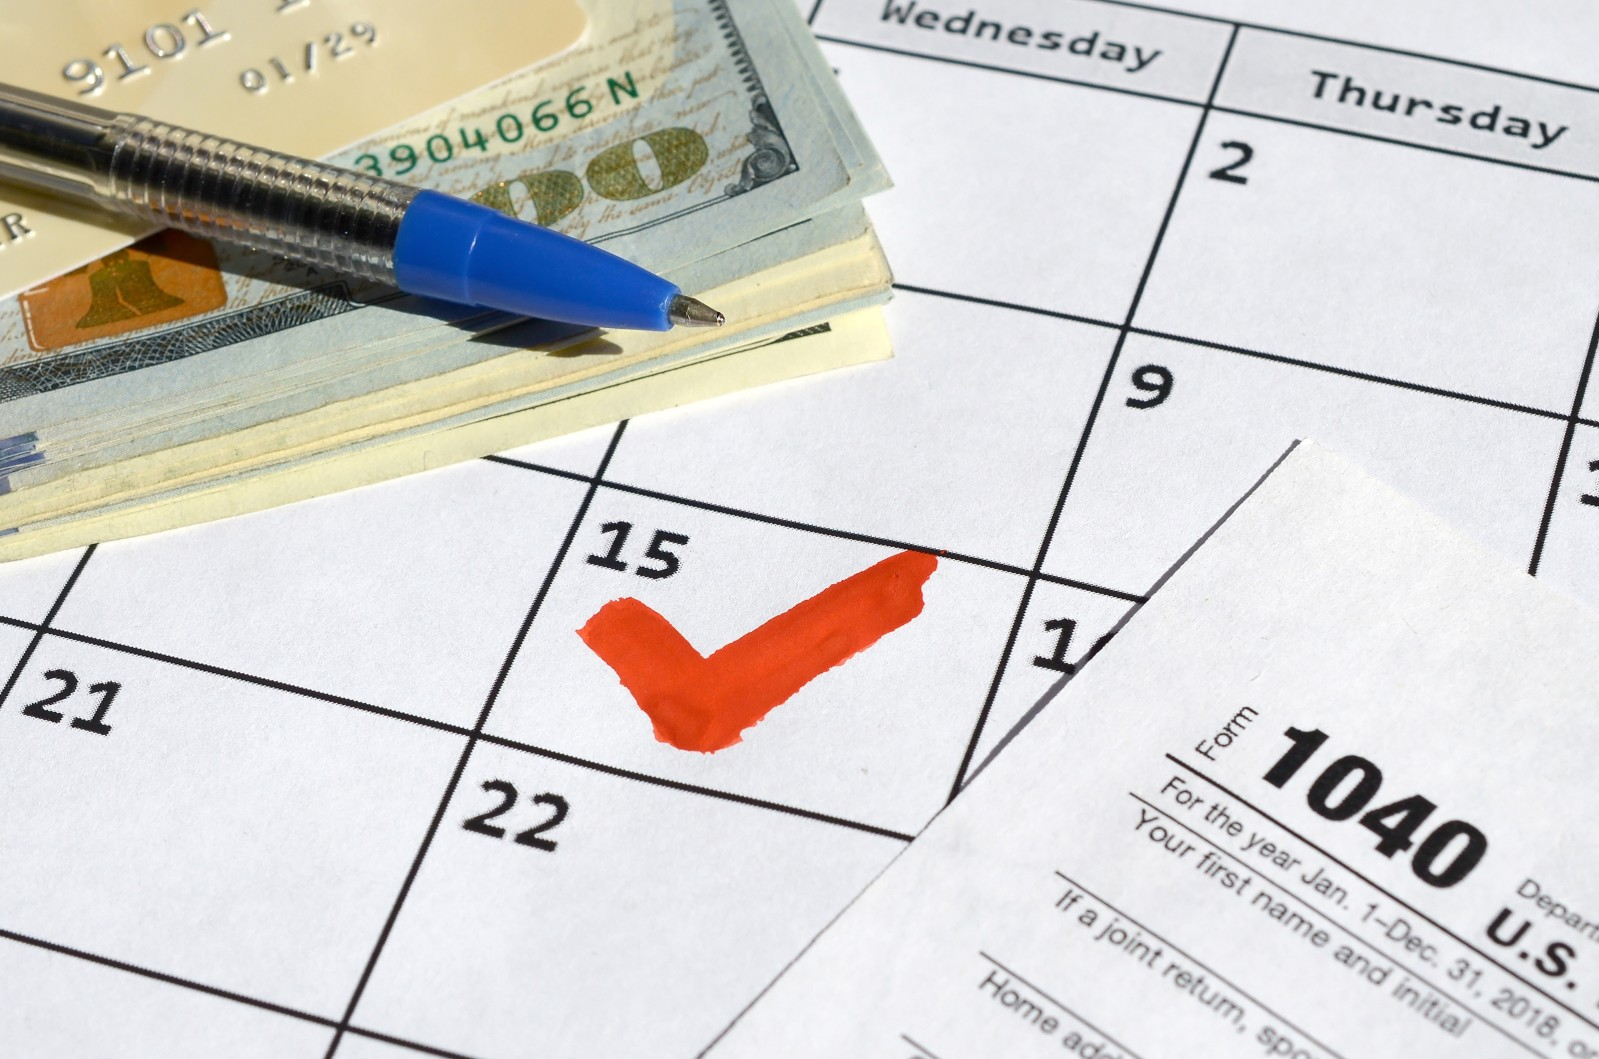 Cash and a 1040 tax form on a calendar